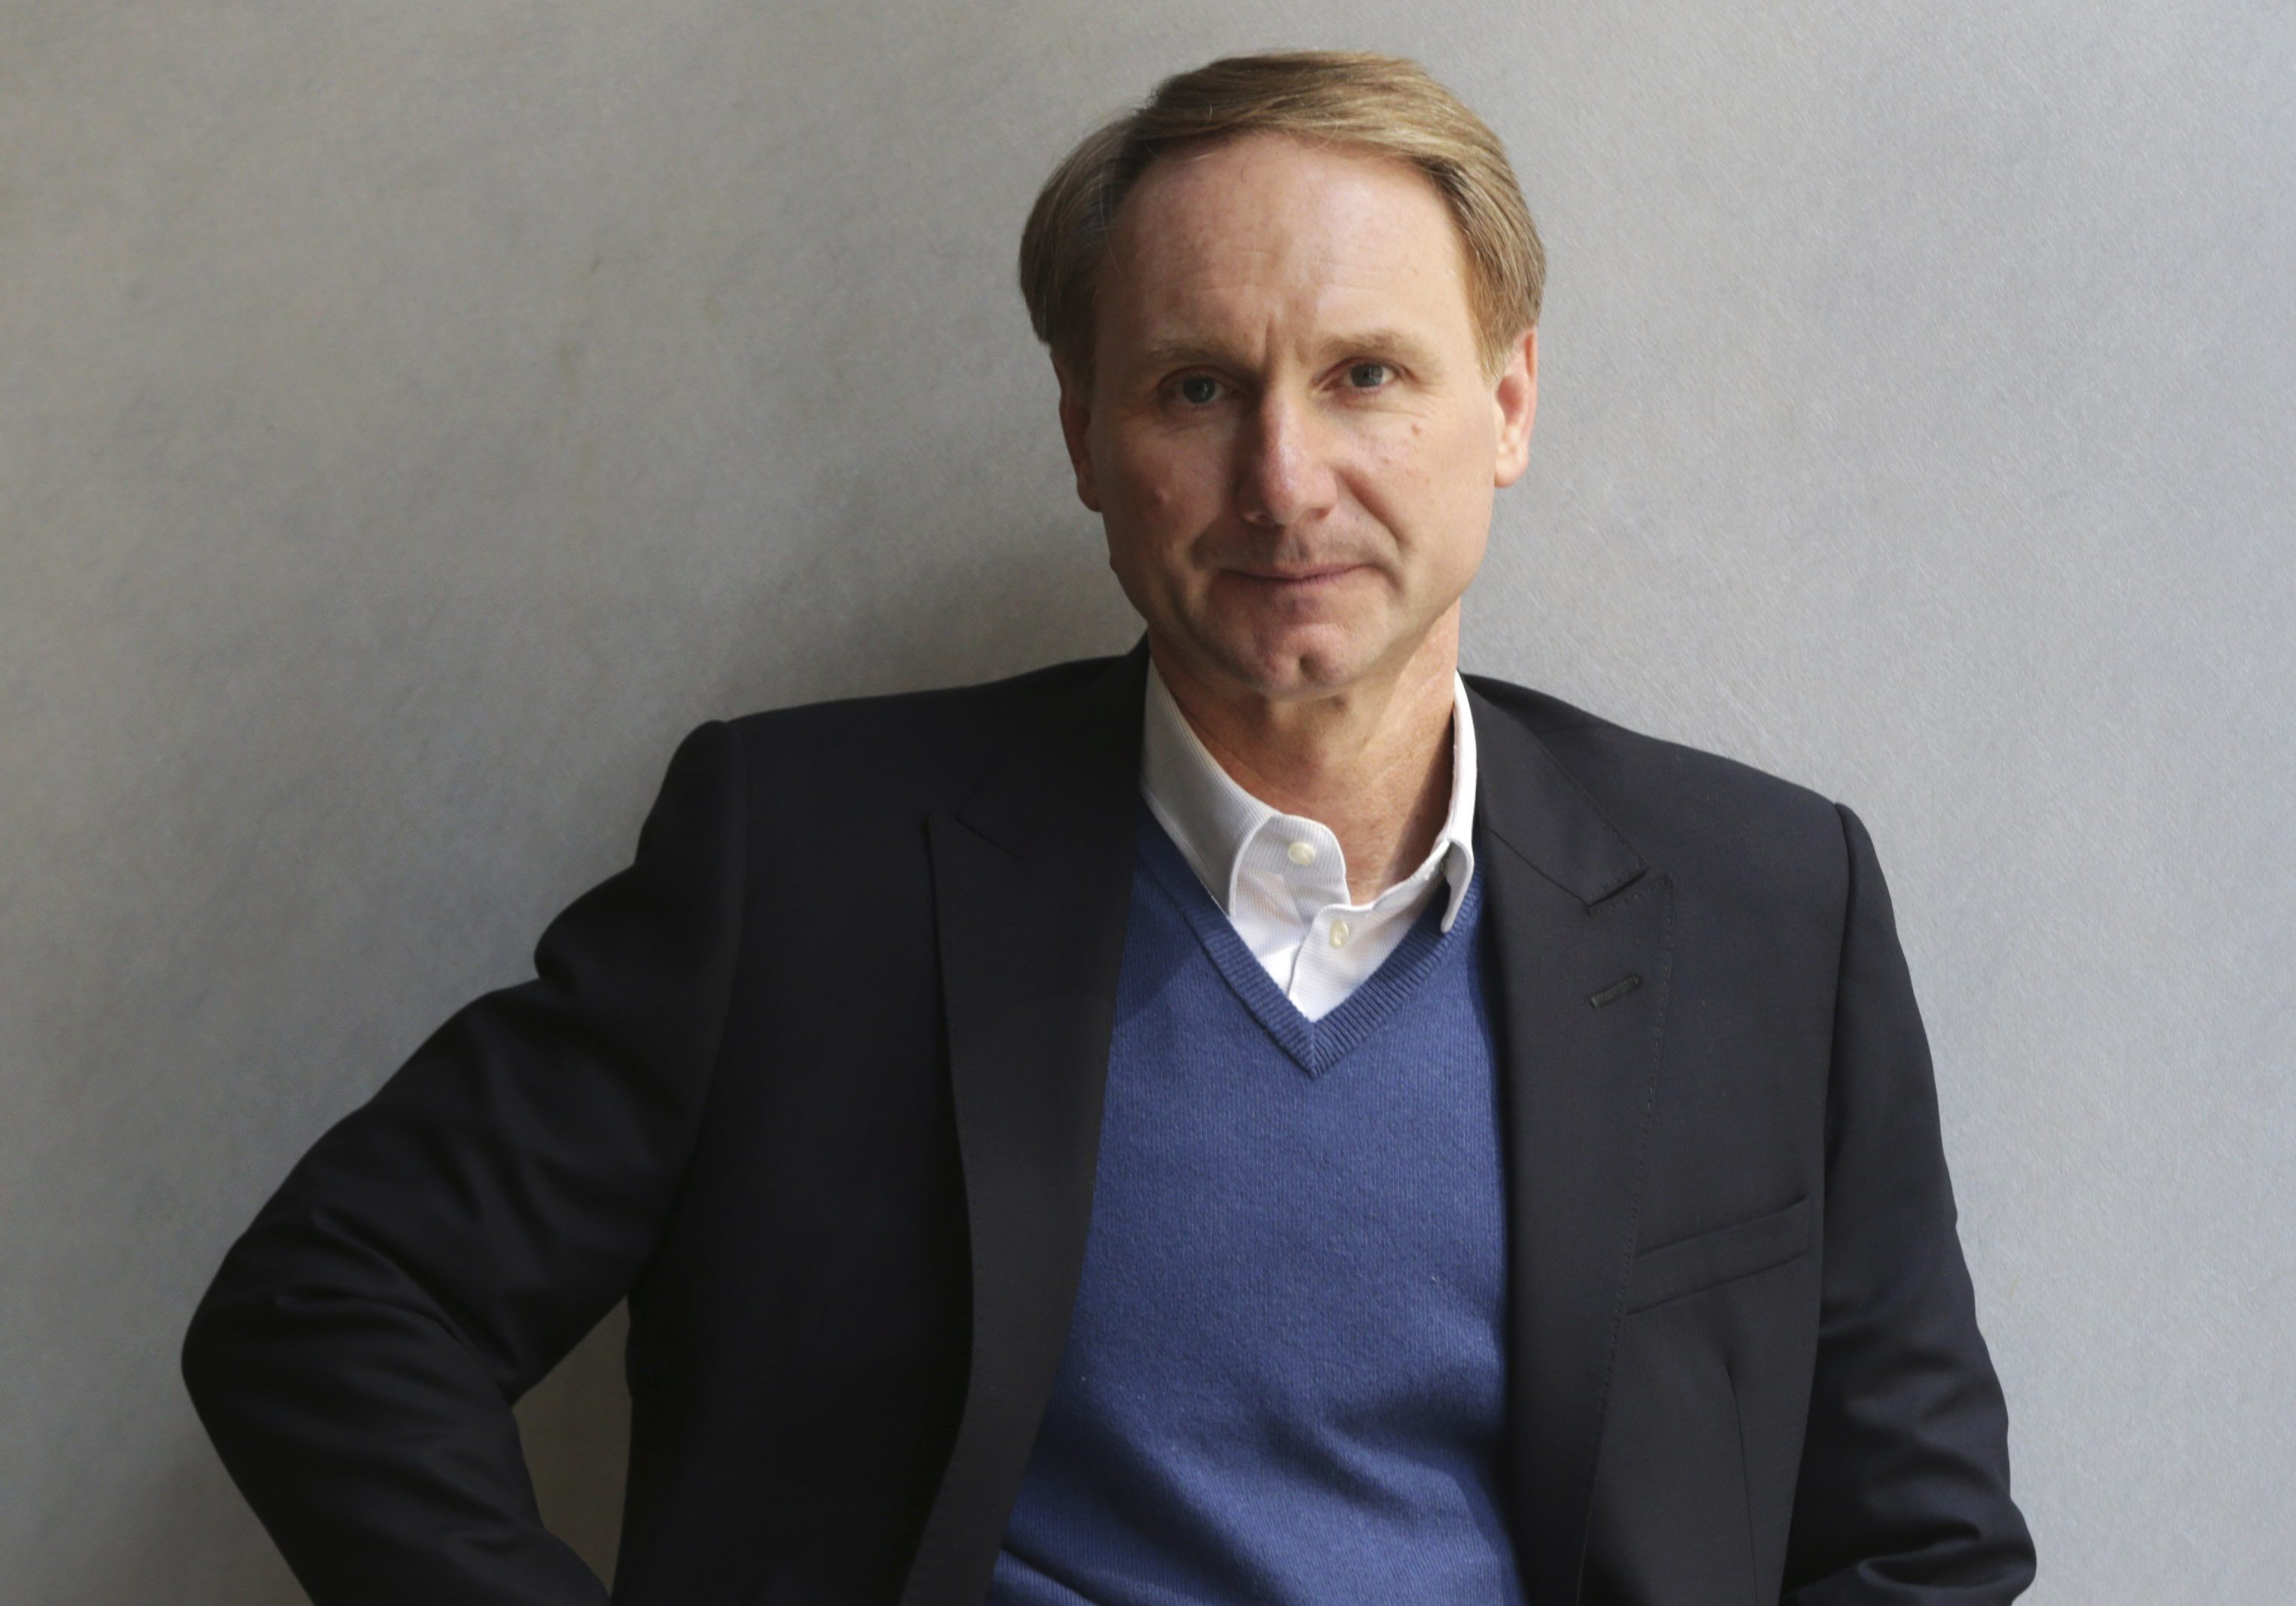 Dan brown known people famous people news and biographies for Dans brown